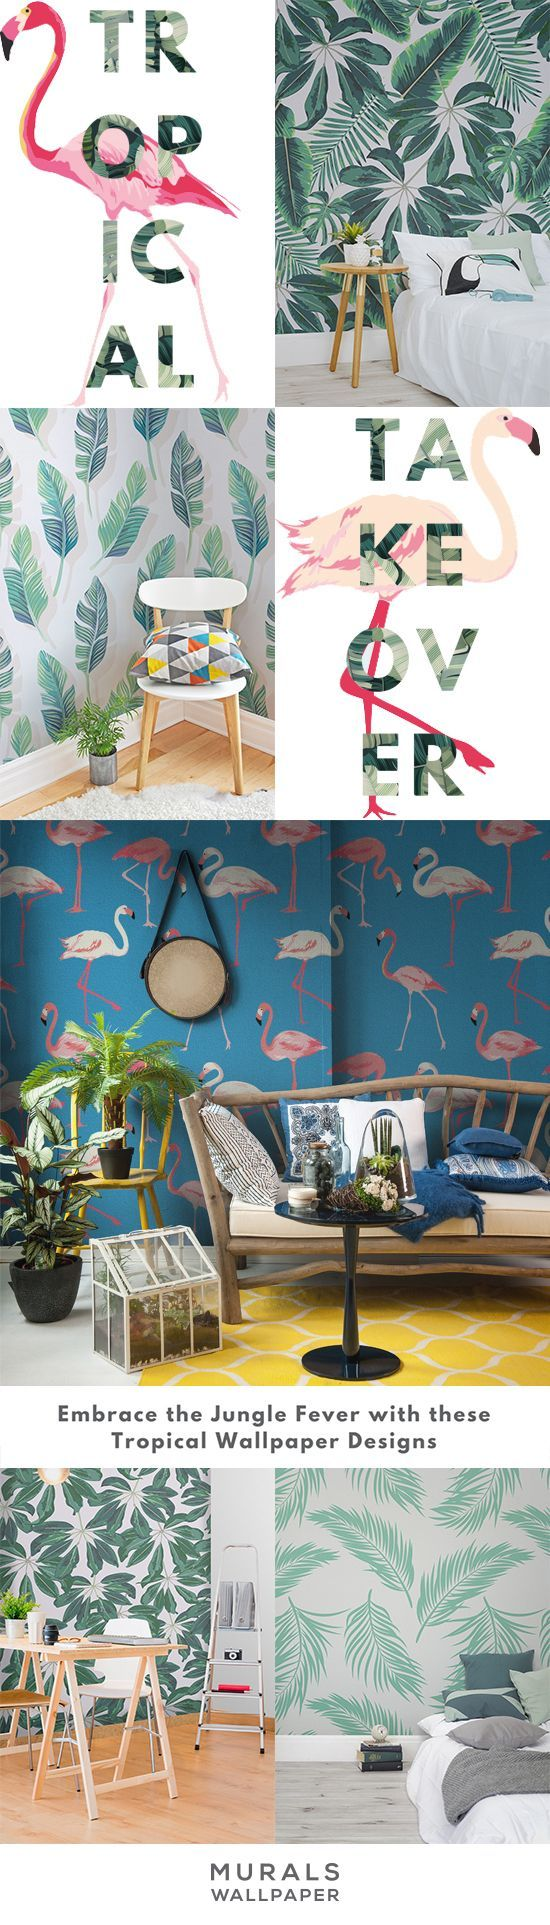 Go bold or go home with these beautiful tropical wallpaper designs. From vibrant leafy prints to exuberant flamingos, our range of tropical wall murals will get your interiors ready for the summer!